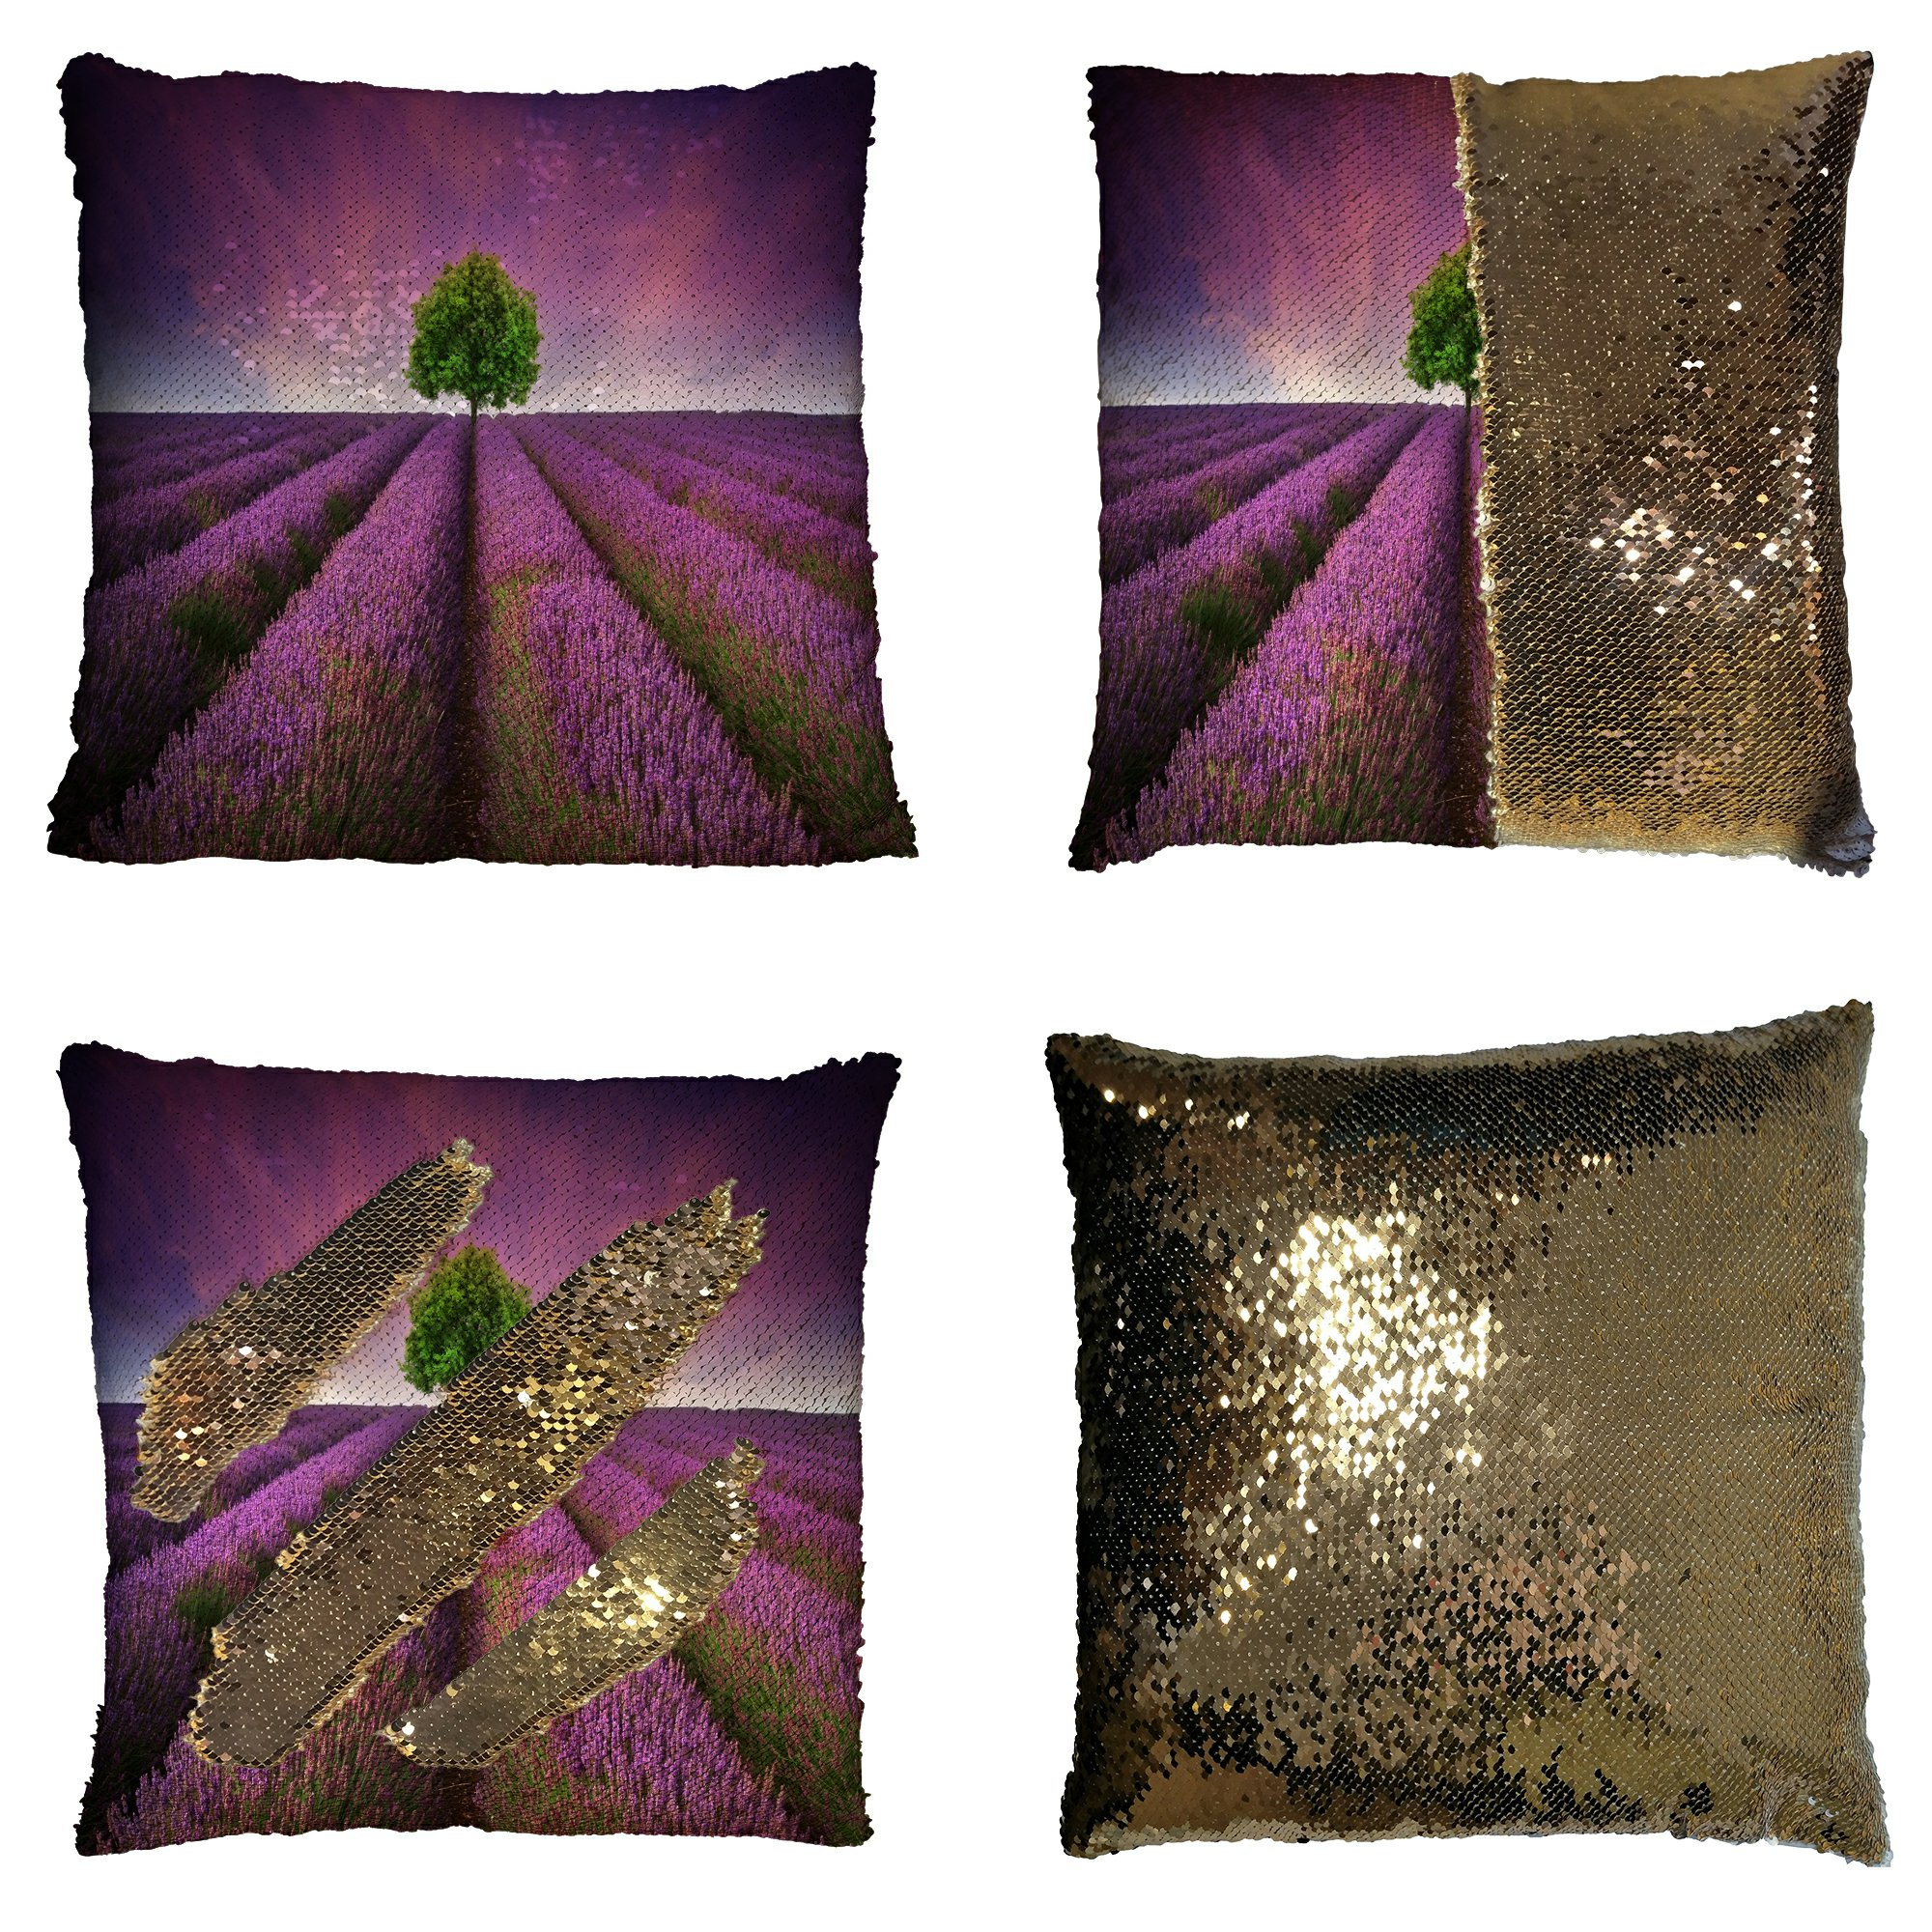 GCKG Nature View Sunset Pillowcase, Beautiful Lavender Field Reversible Mermaid Sequin Pillow Case Home Decor Cushion Cover 16x16 inches